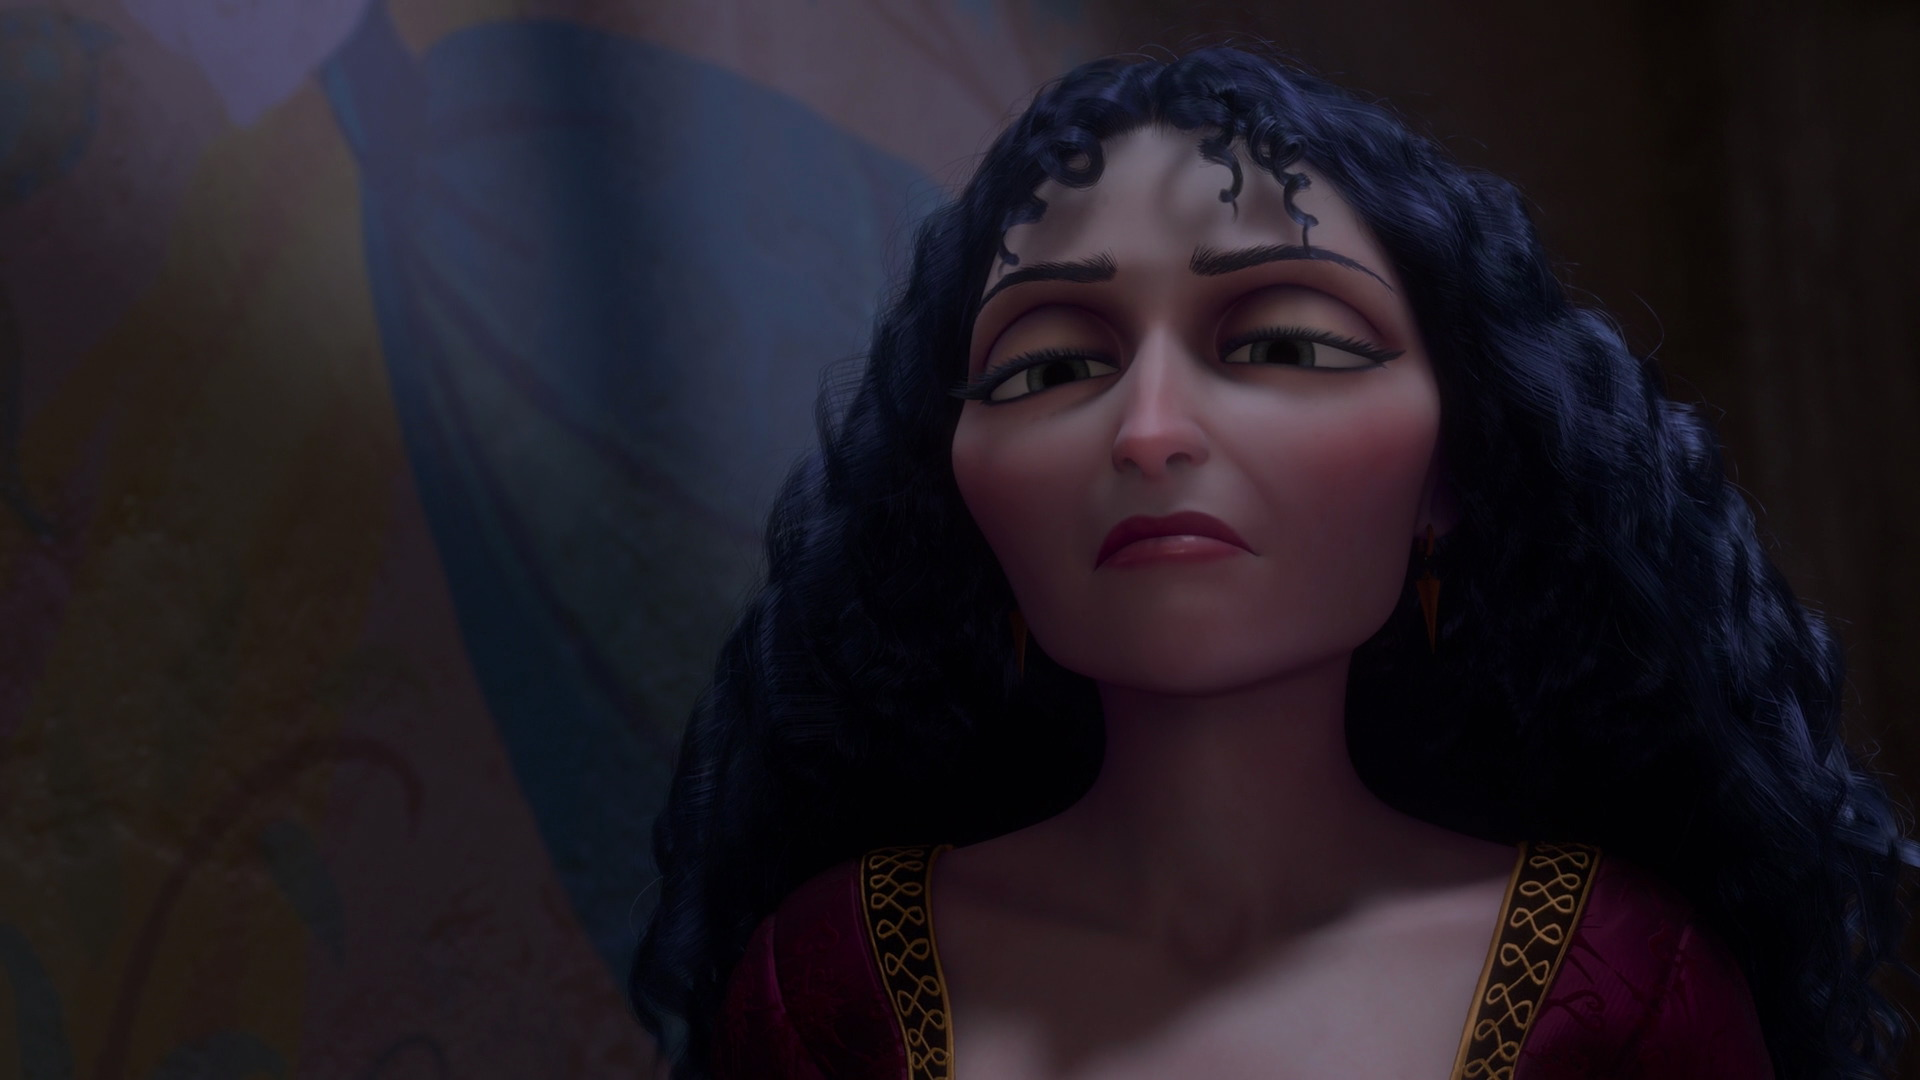 Disney tangled mother gothel